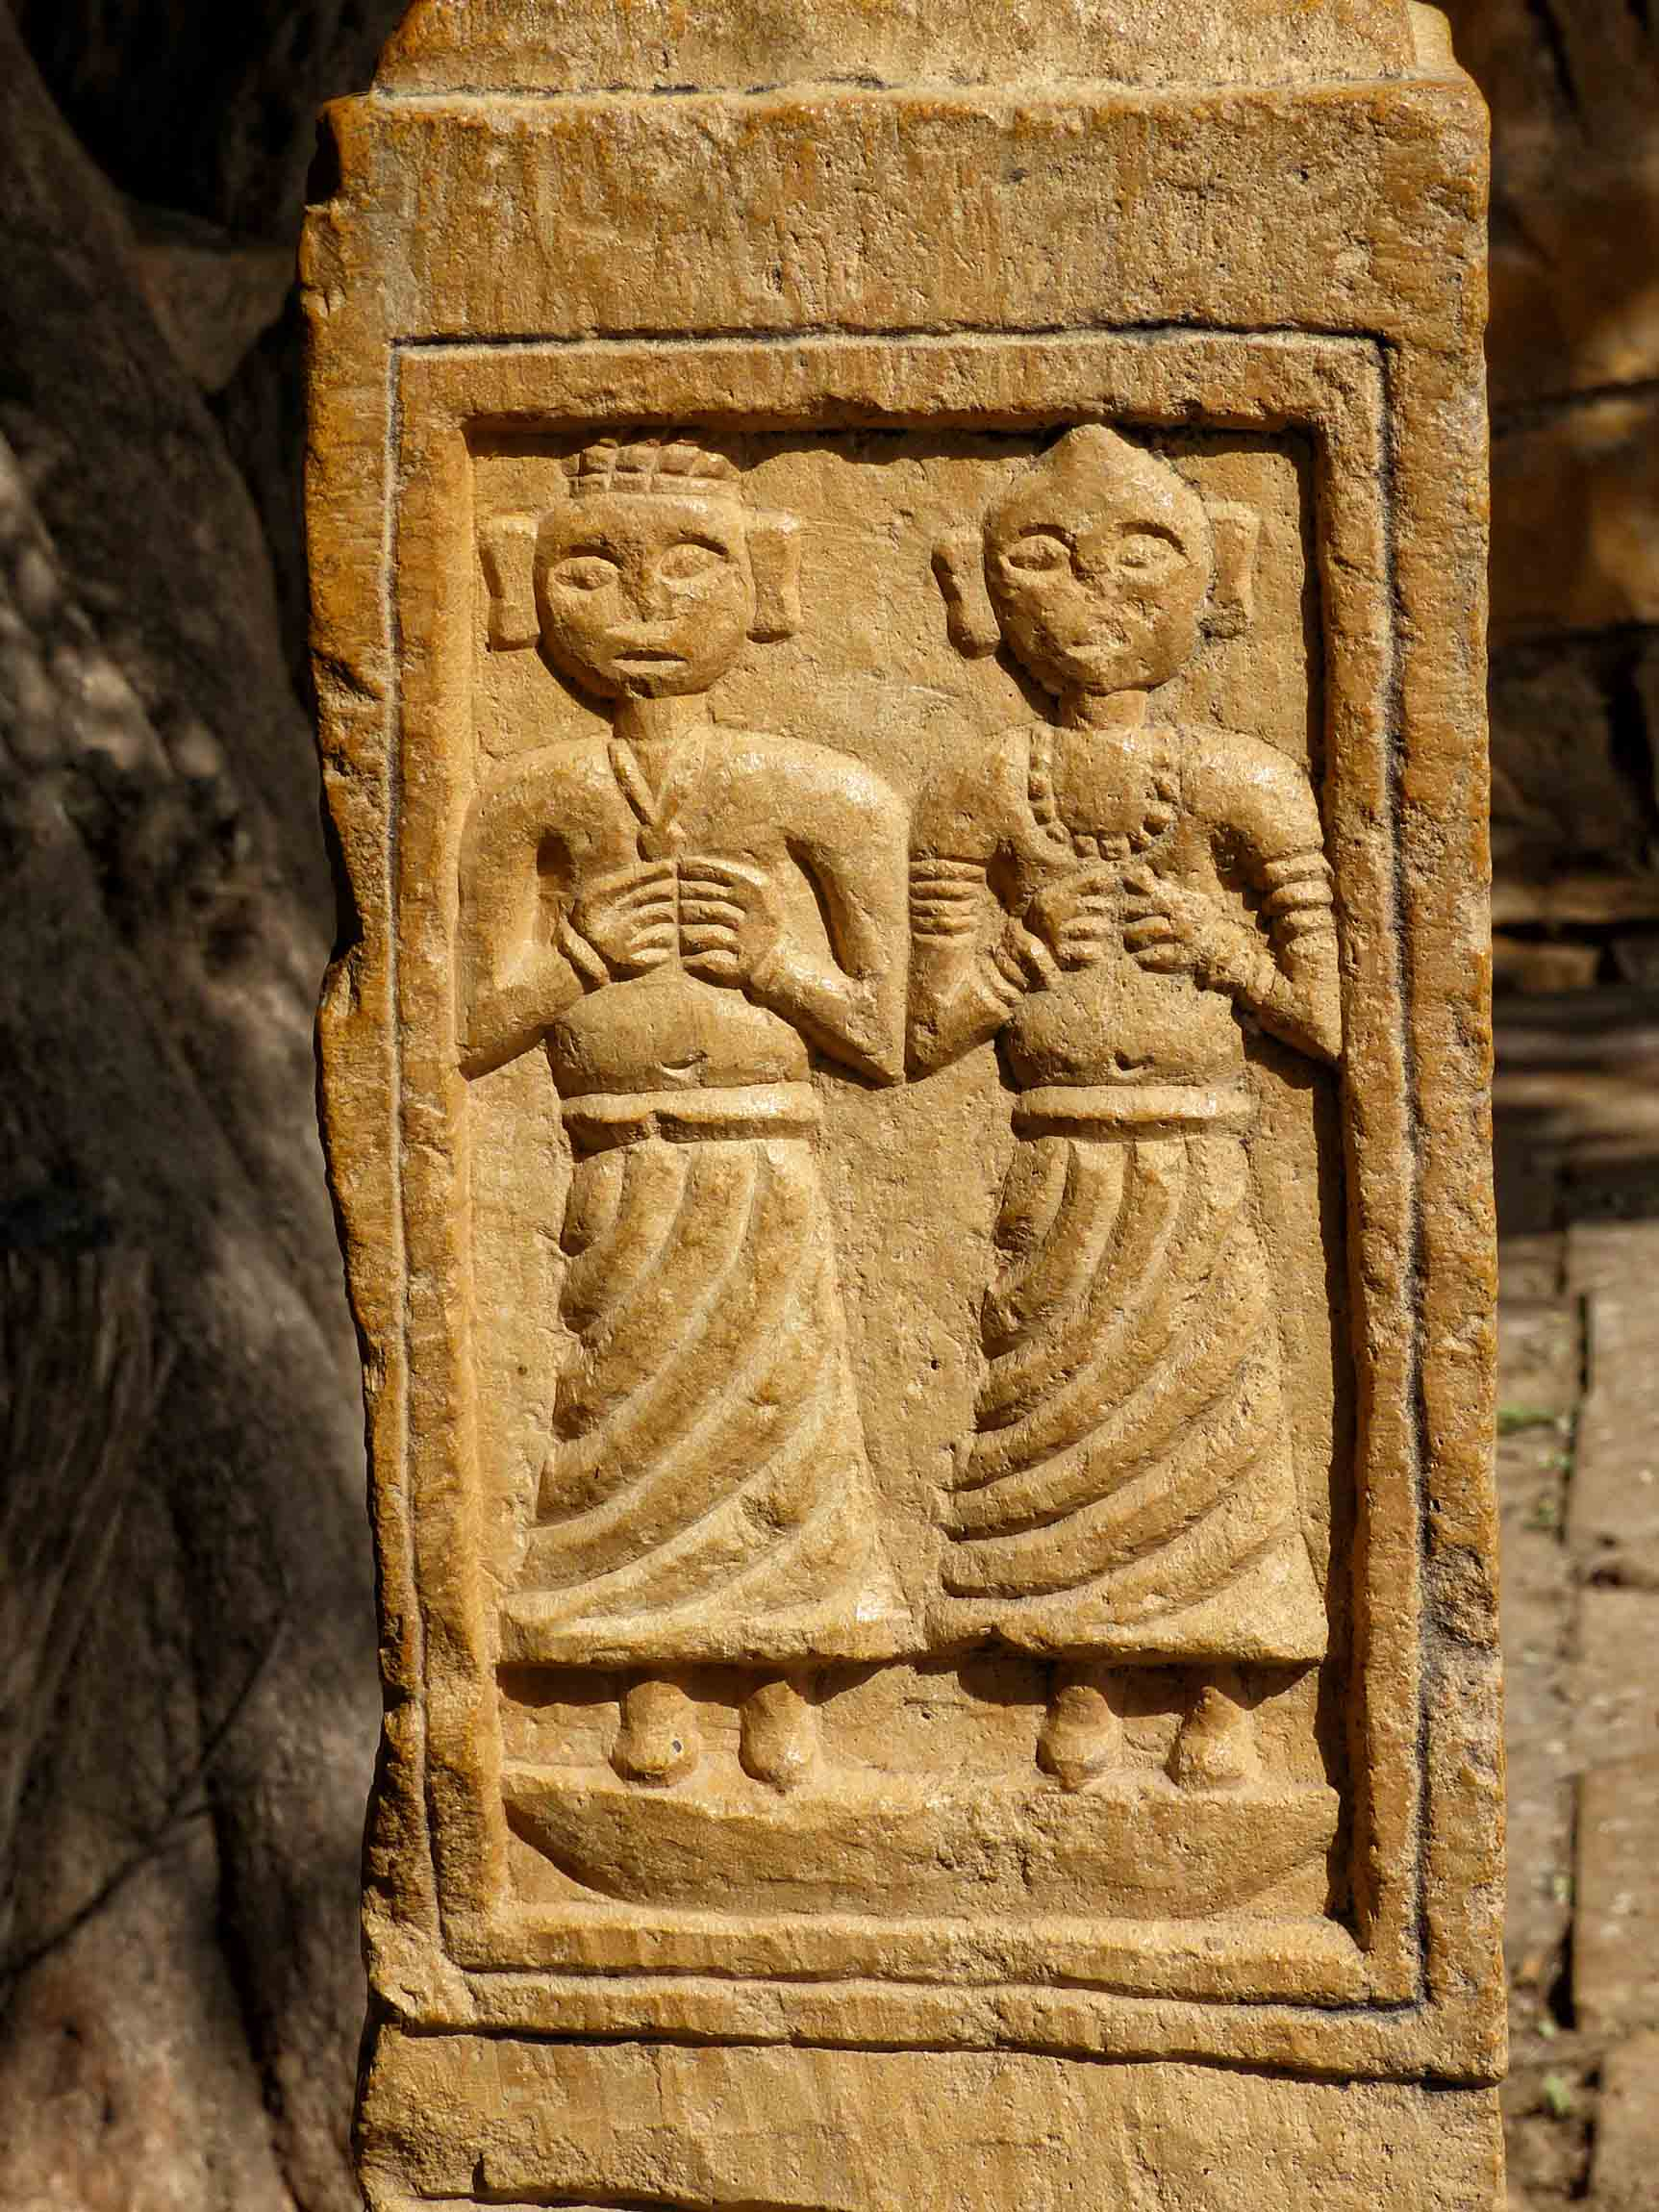 Stone with carving of two women